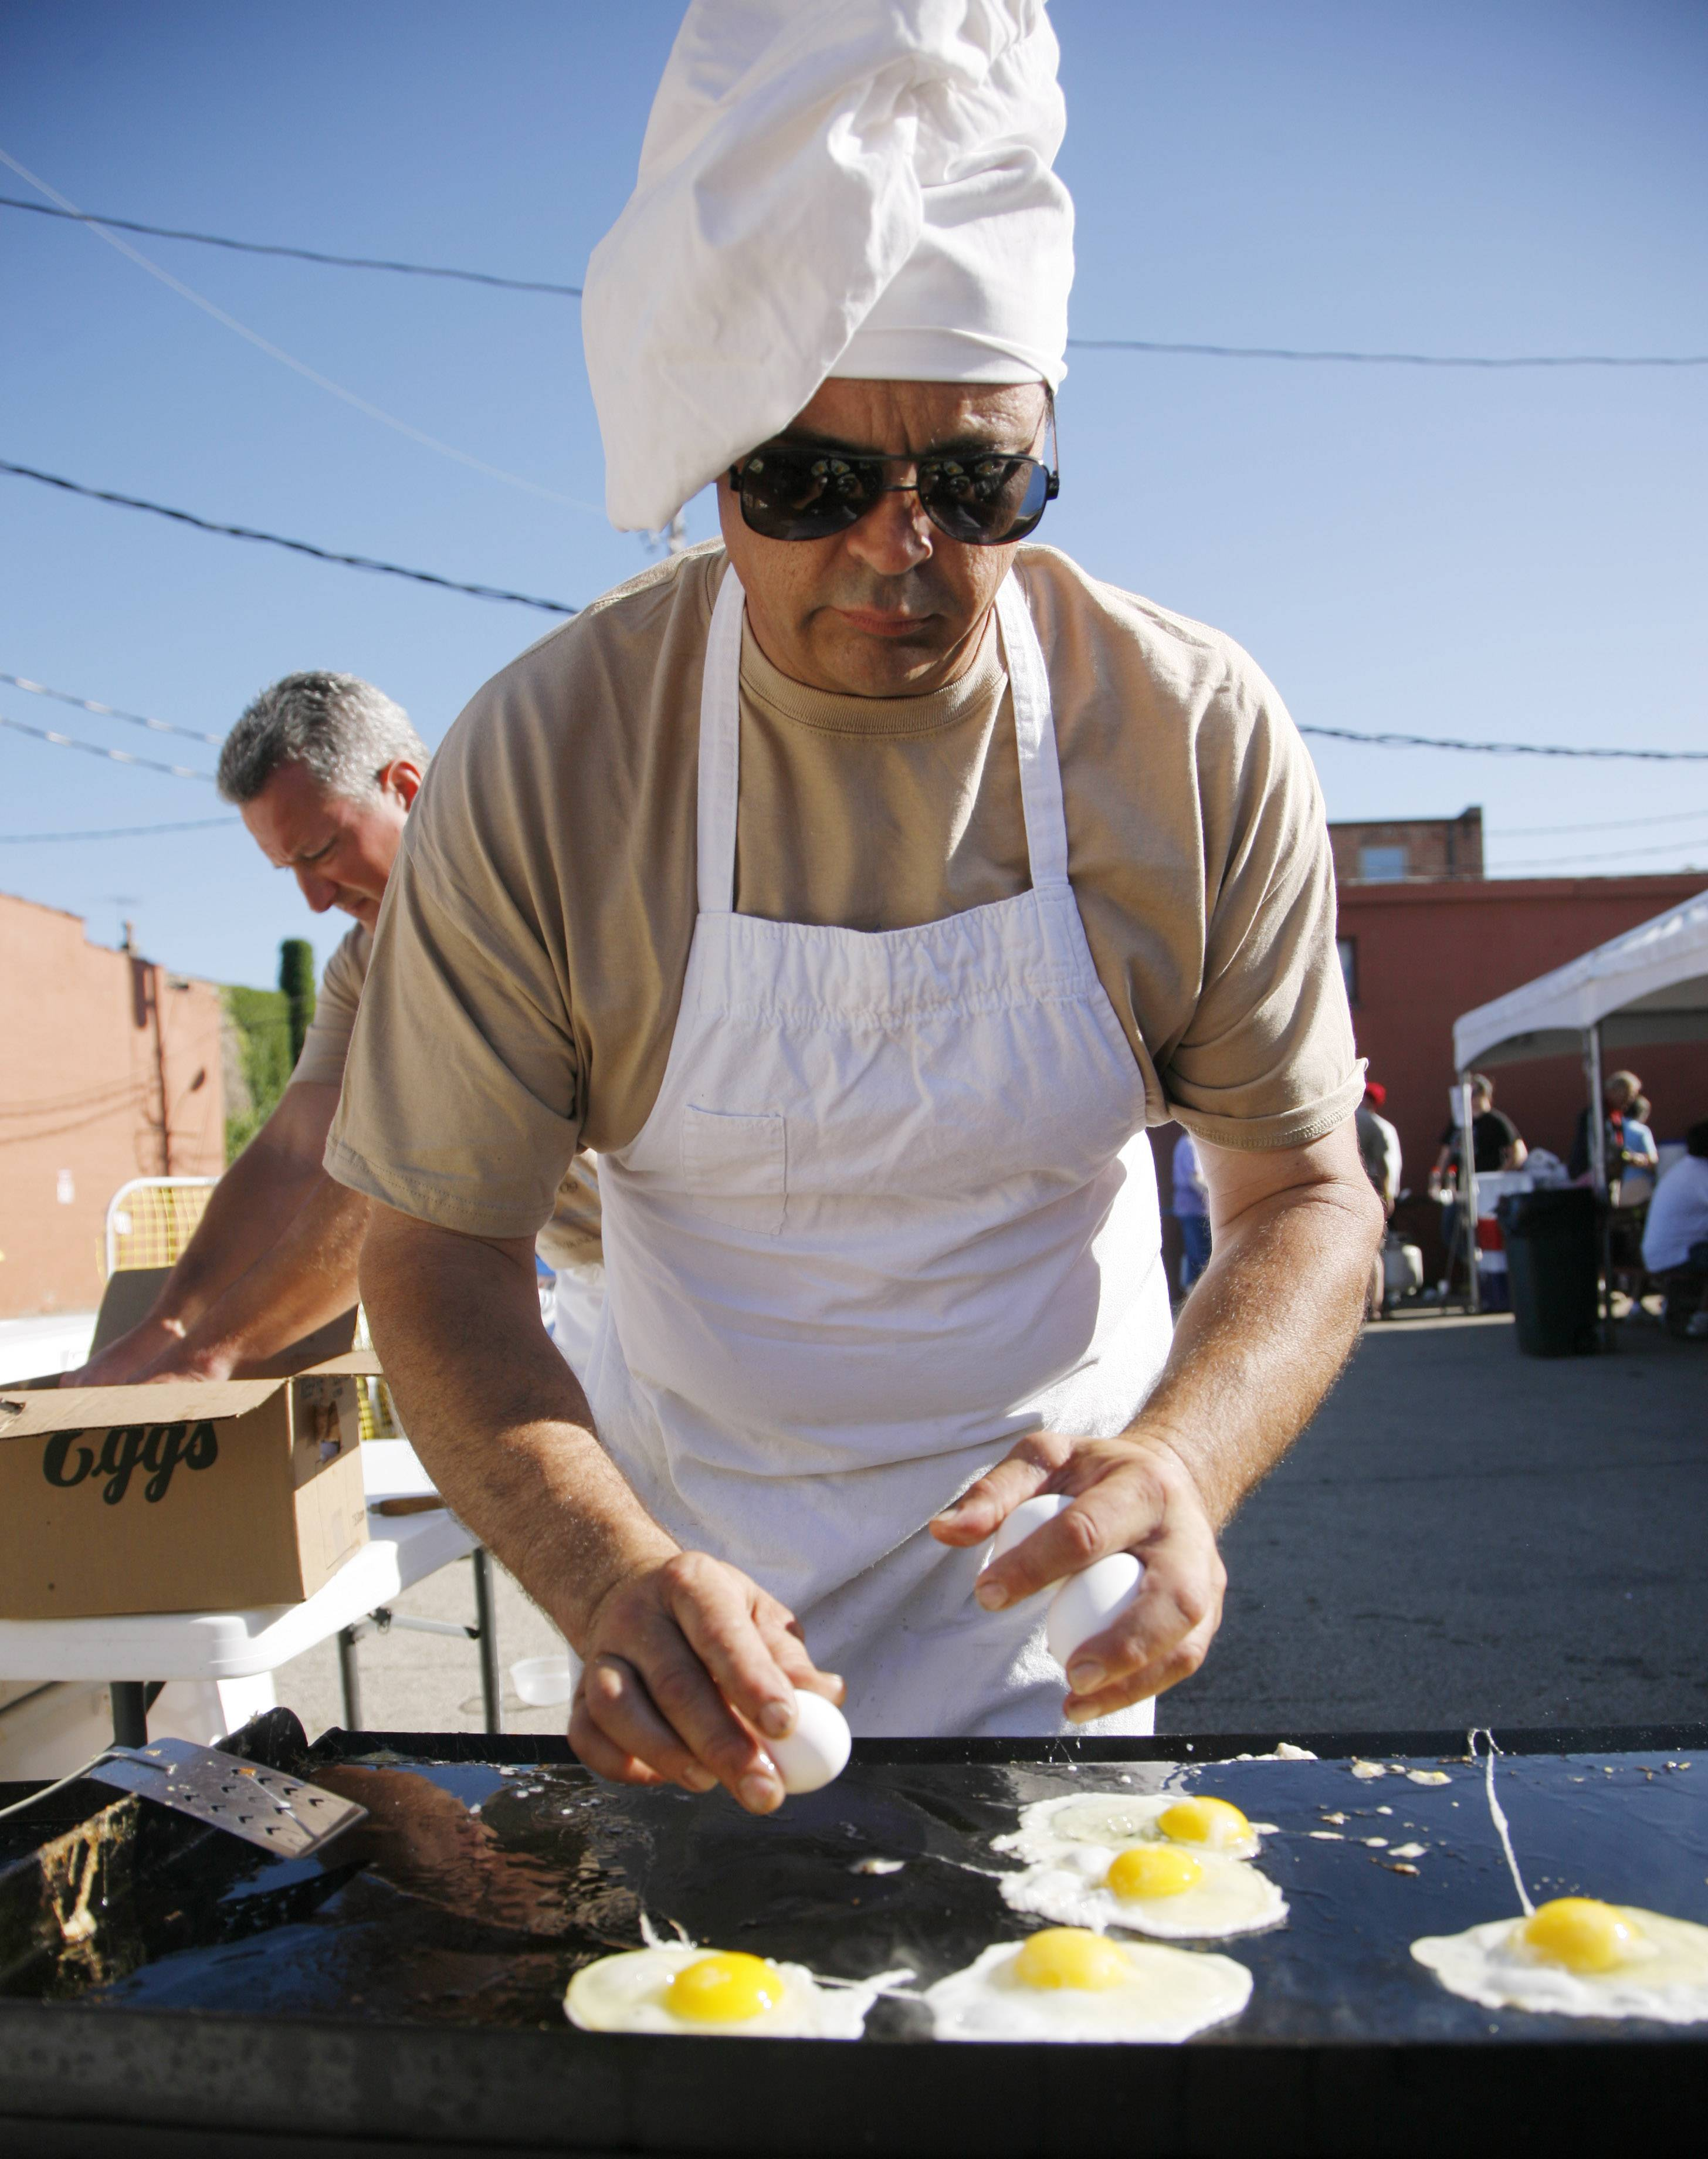 Bud Meisner of Geneva gets started on cooking eggs for a previous all-you-can-eat breakfast at Geneva's Swedish Days.